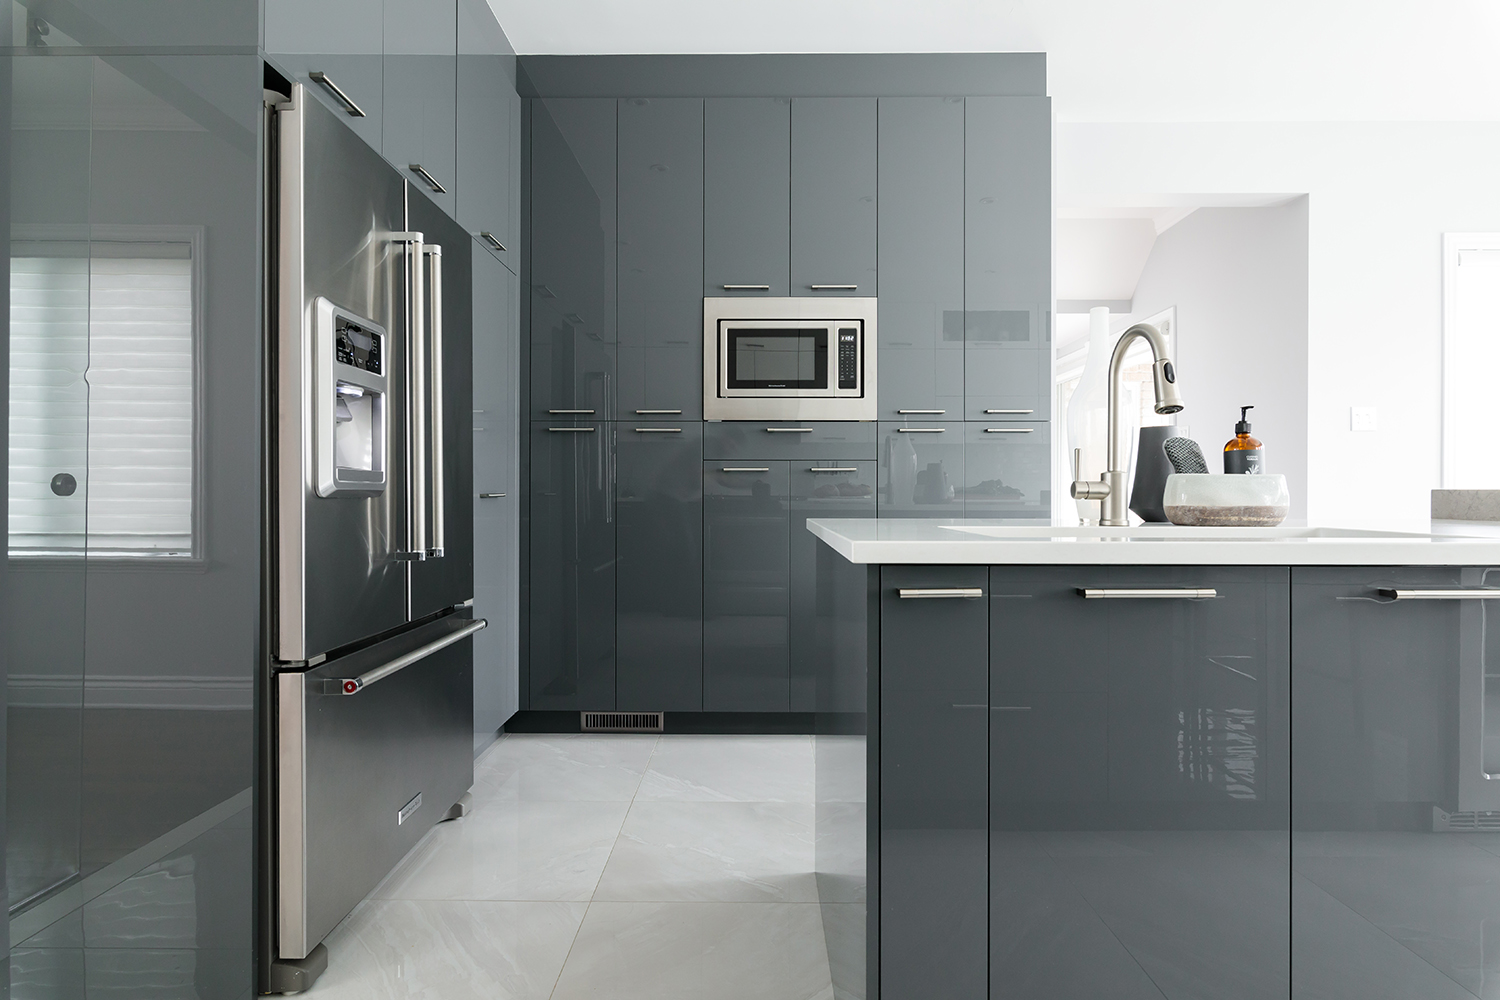 Cuisine Laquée Grise here's how to choose the materials for your kitchen cabinets